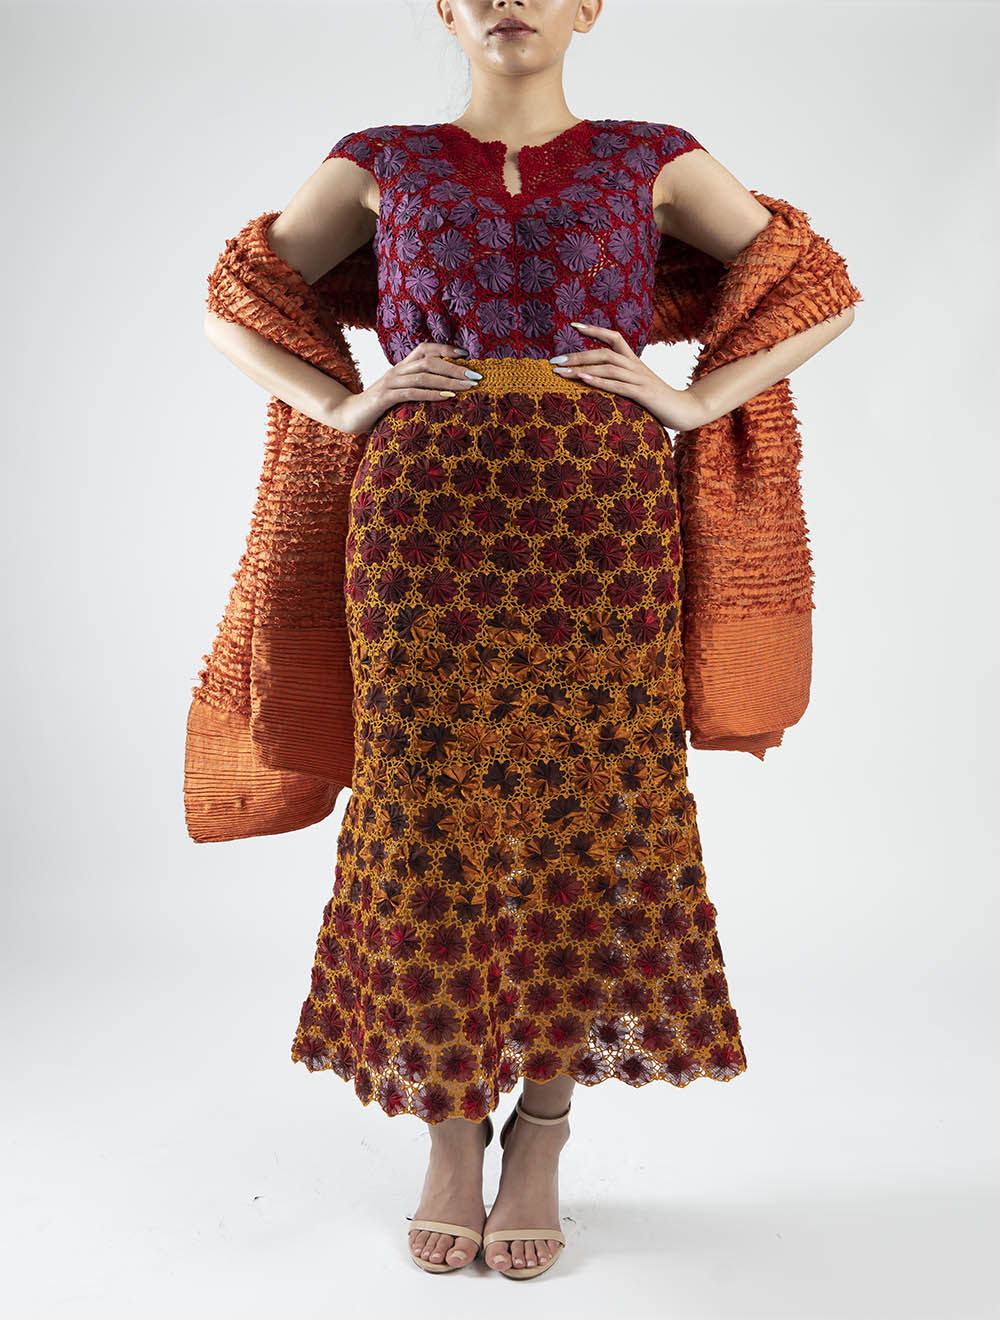 Passion fruit Skirt – Front